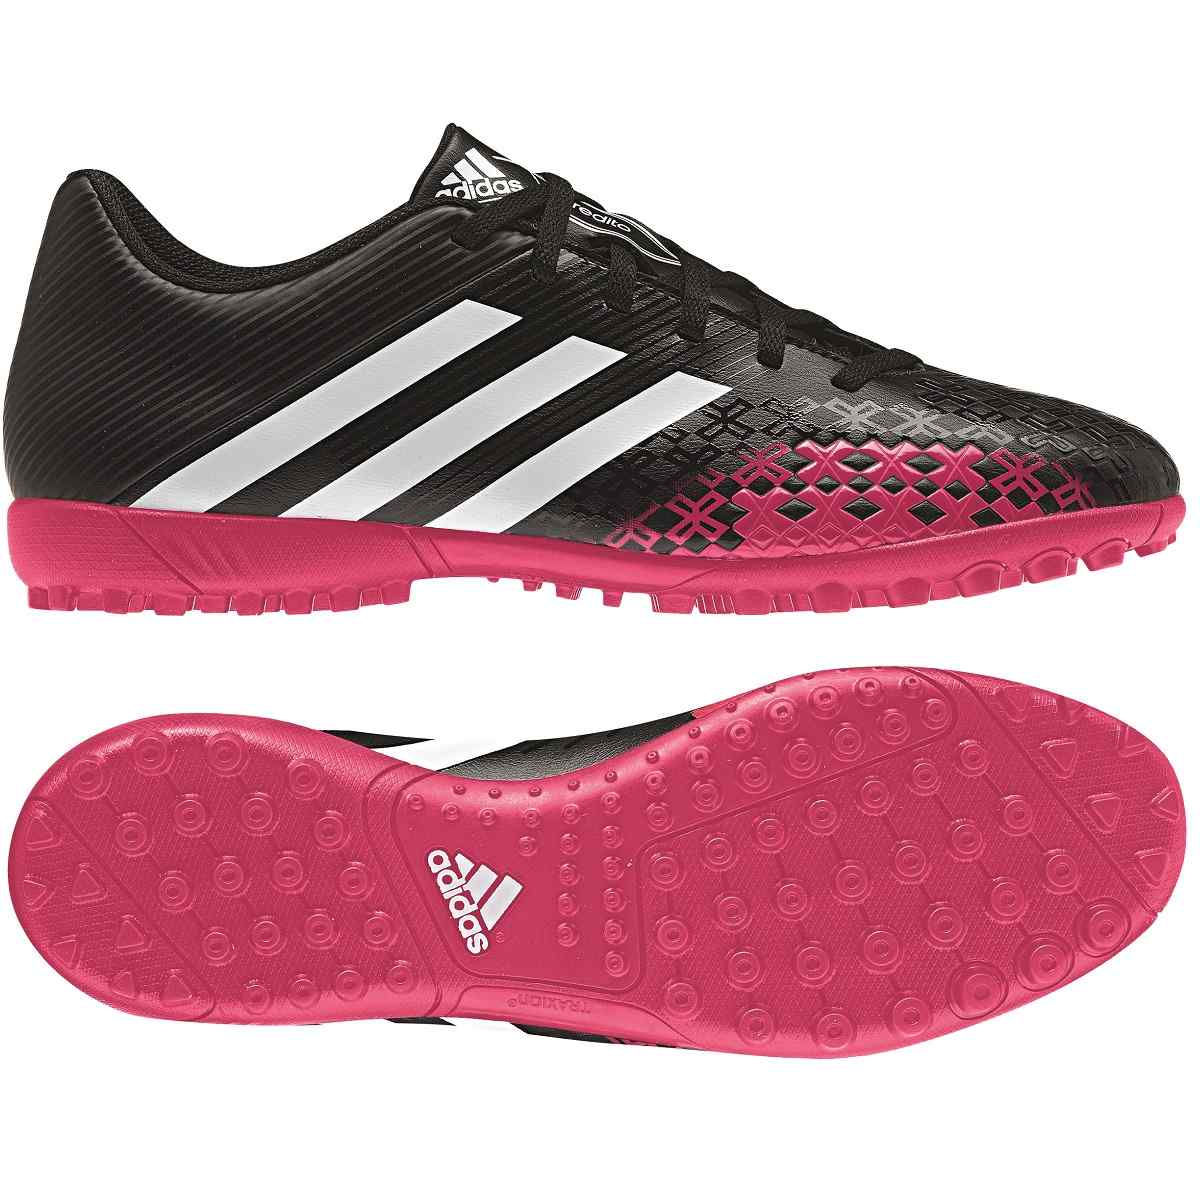 adidas predito lz trx tf fu ballschuhe kunstrasen outdoor. Black Bedroom Furniture Sets. Home Design Ideas